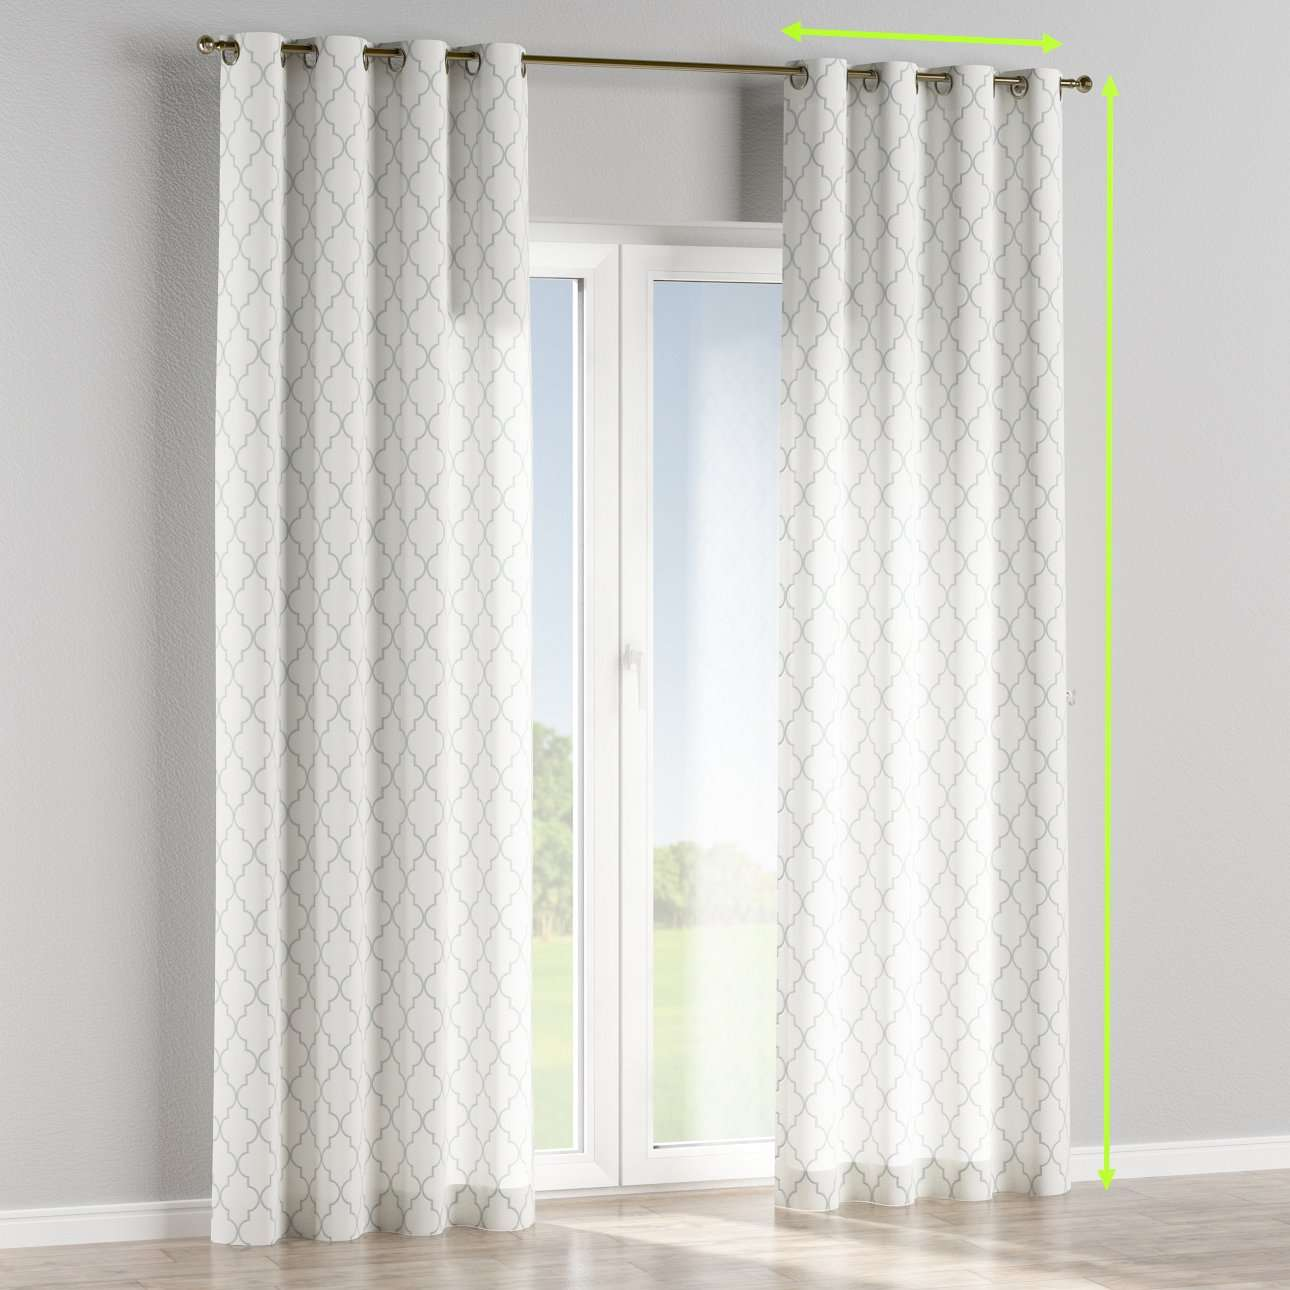 Eyelet curtains in collection Comic Book & Geo Prints, fabric: 137-85